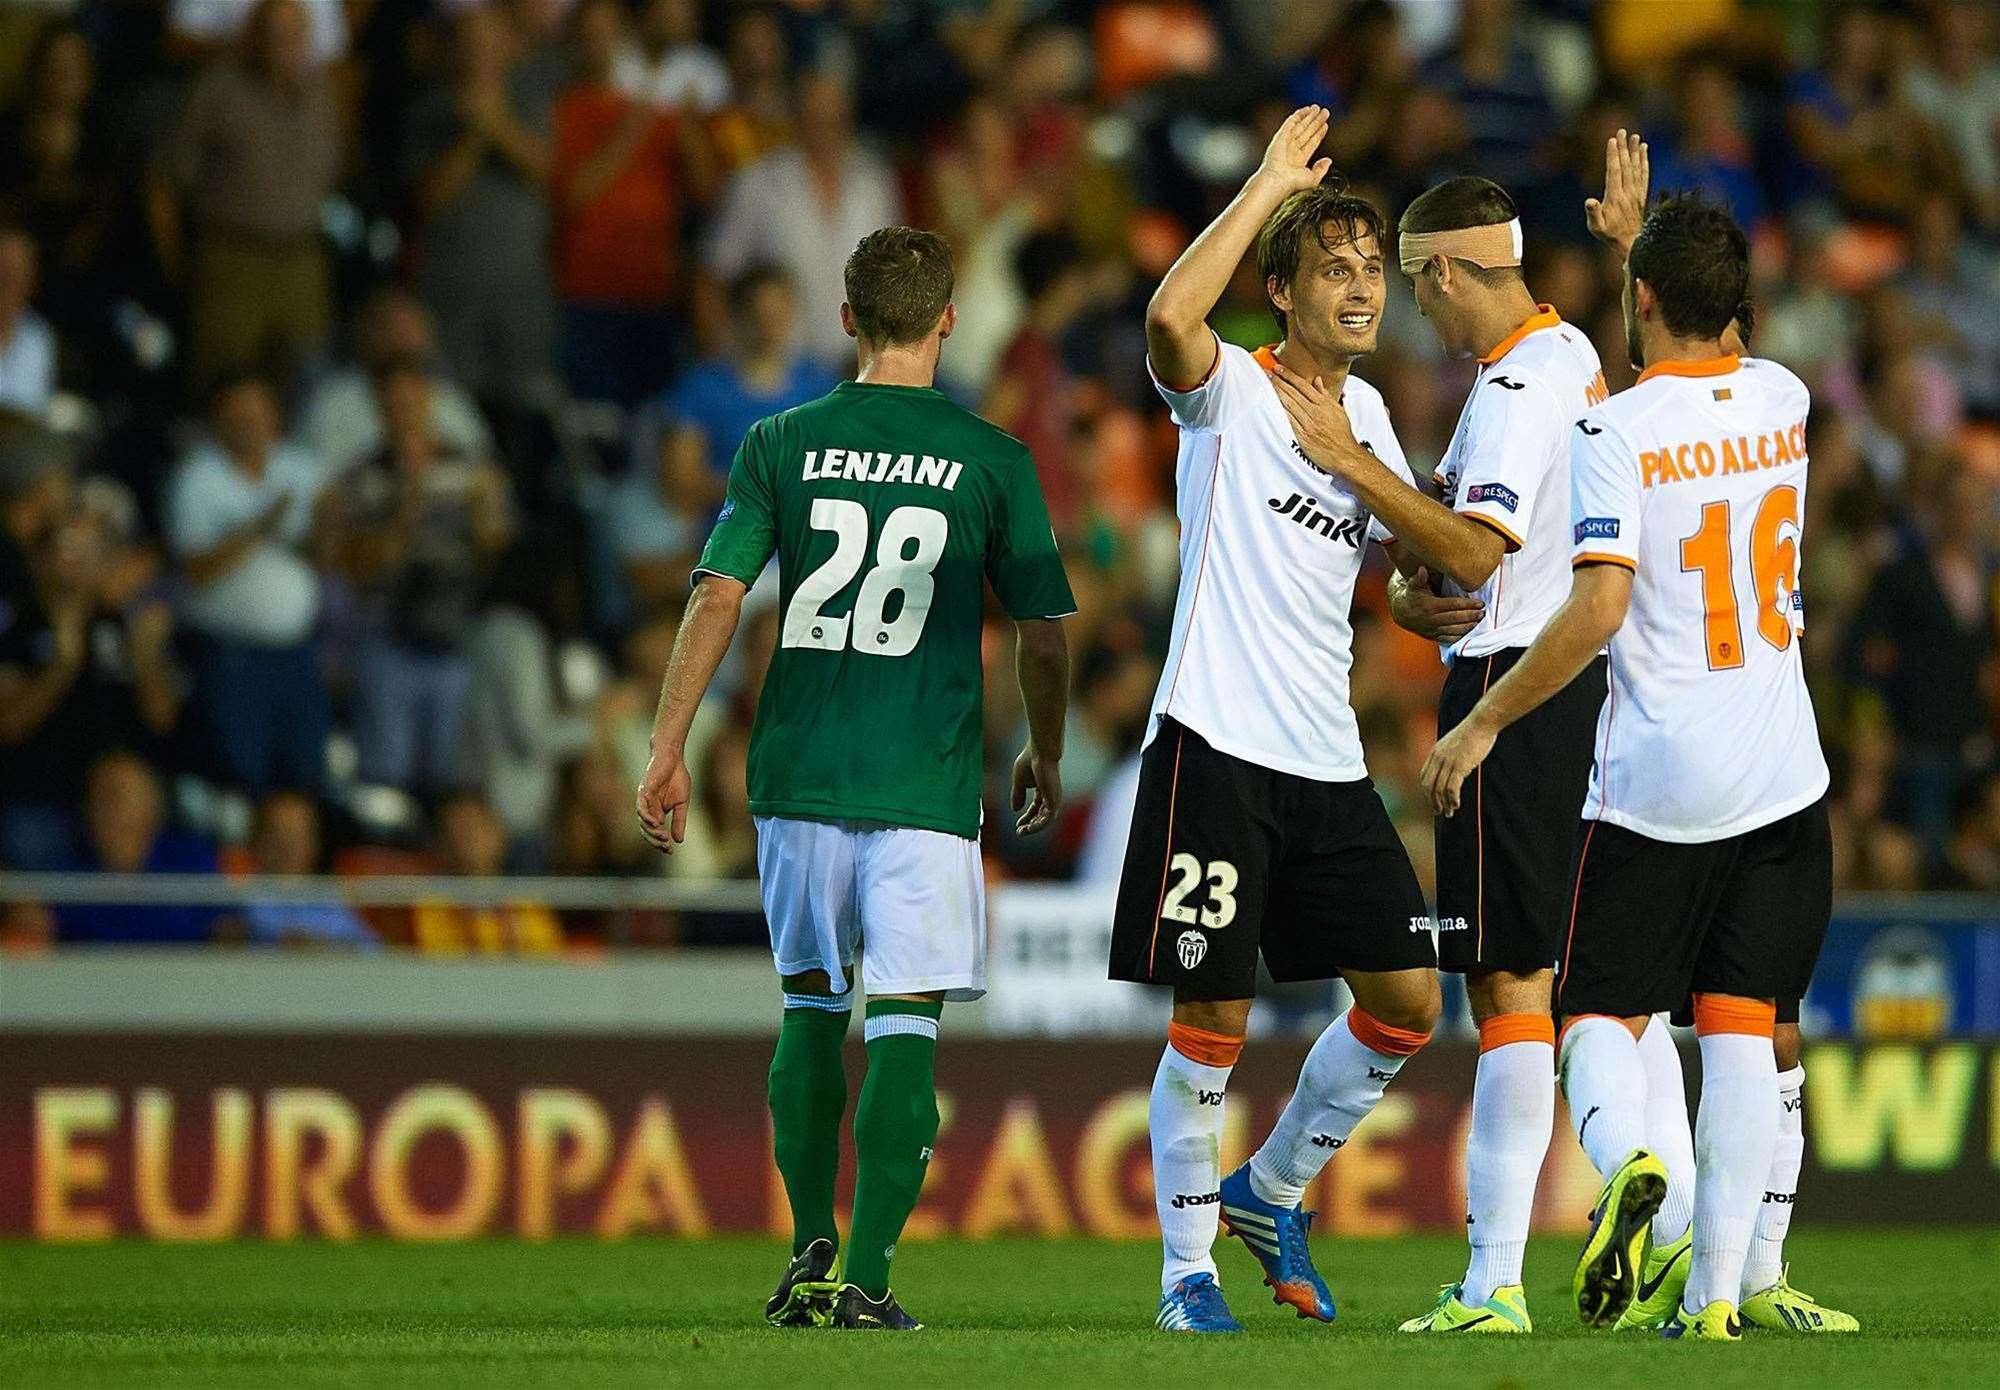 Europa: Spurs, Fiorentina maintain perfect records